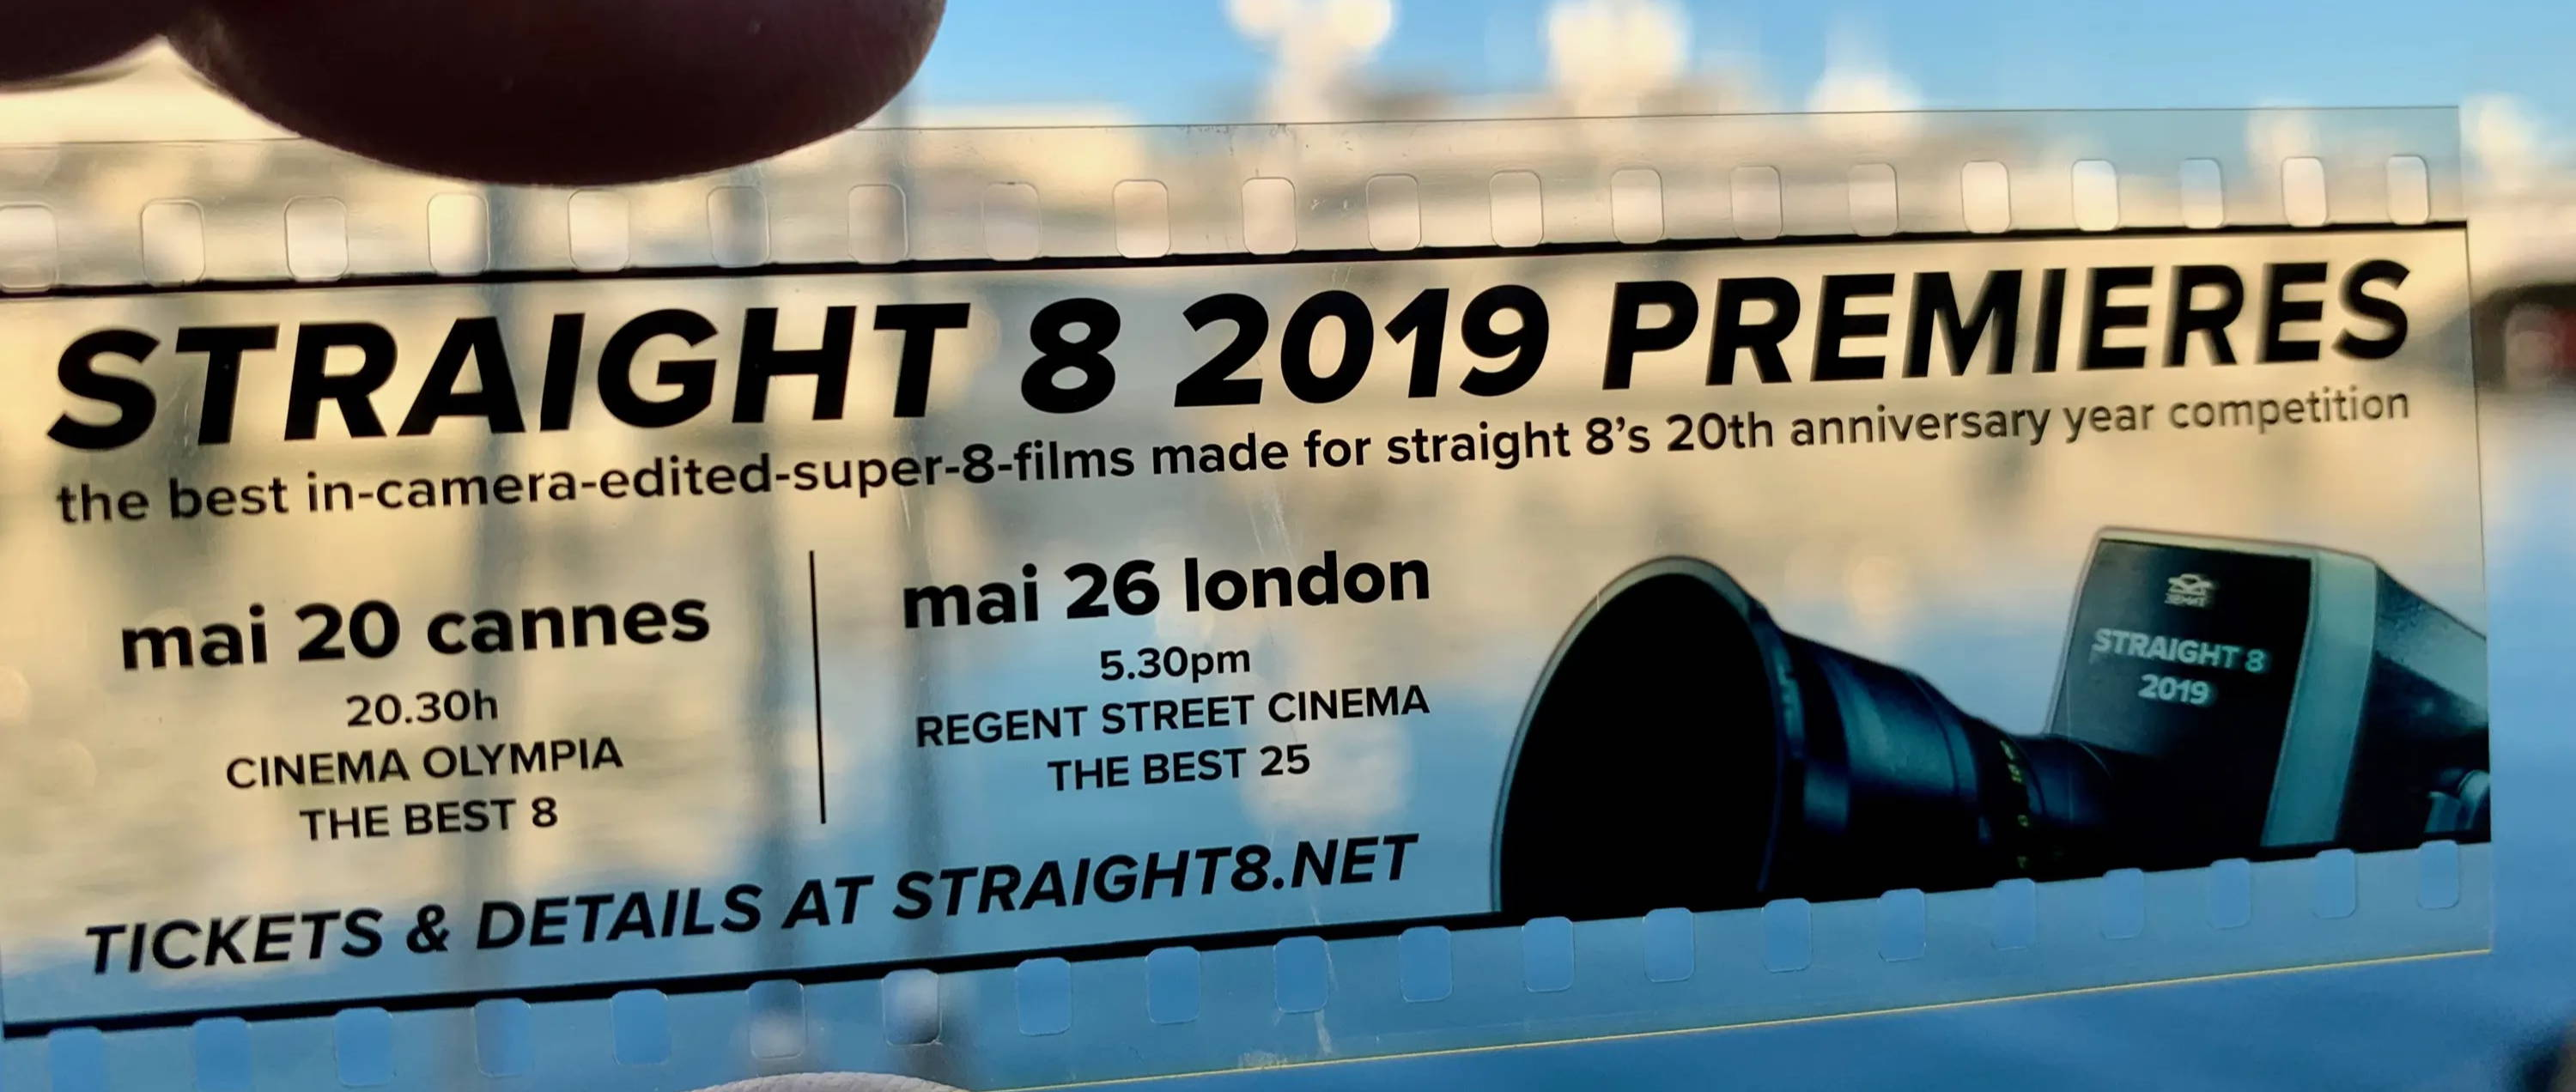 Straight 9 Premieres - ticket